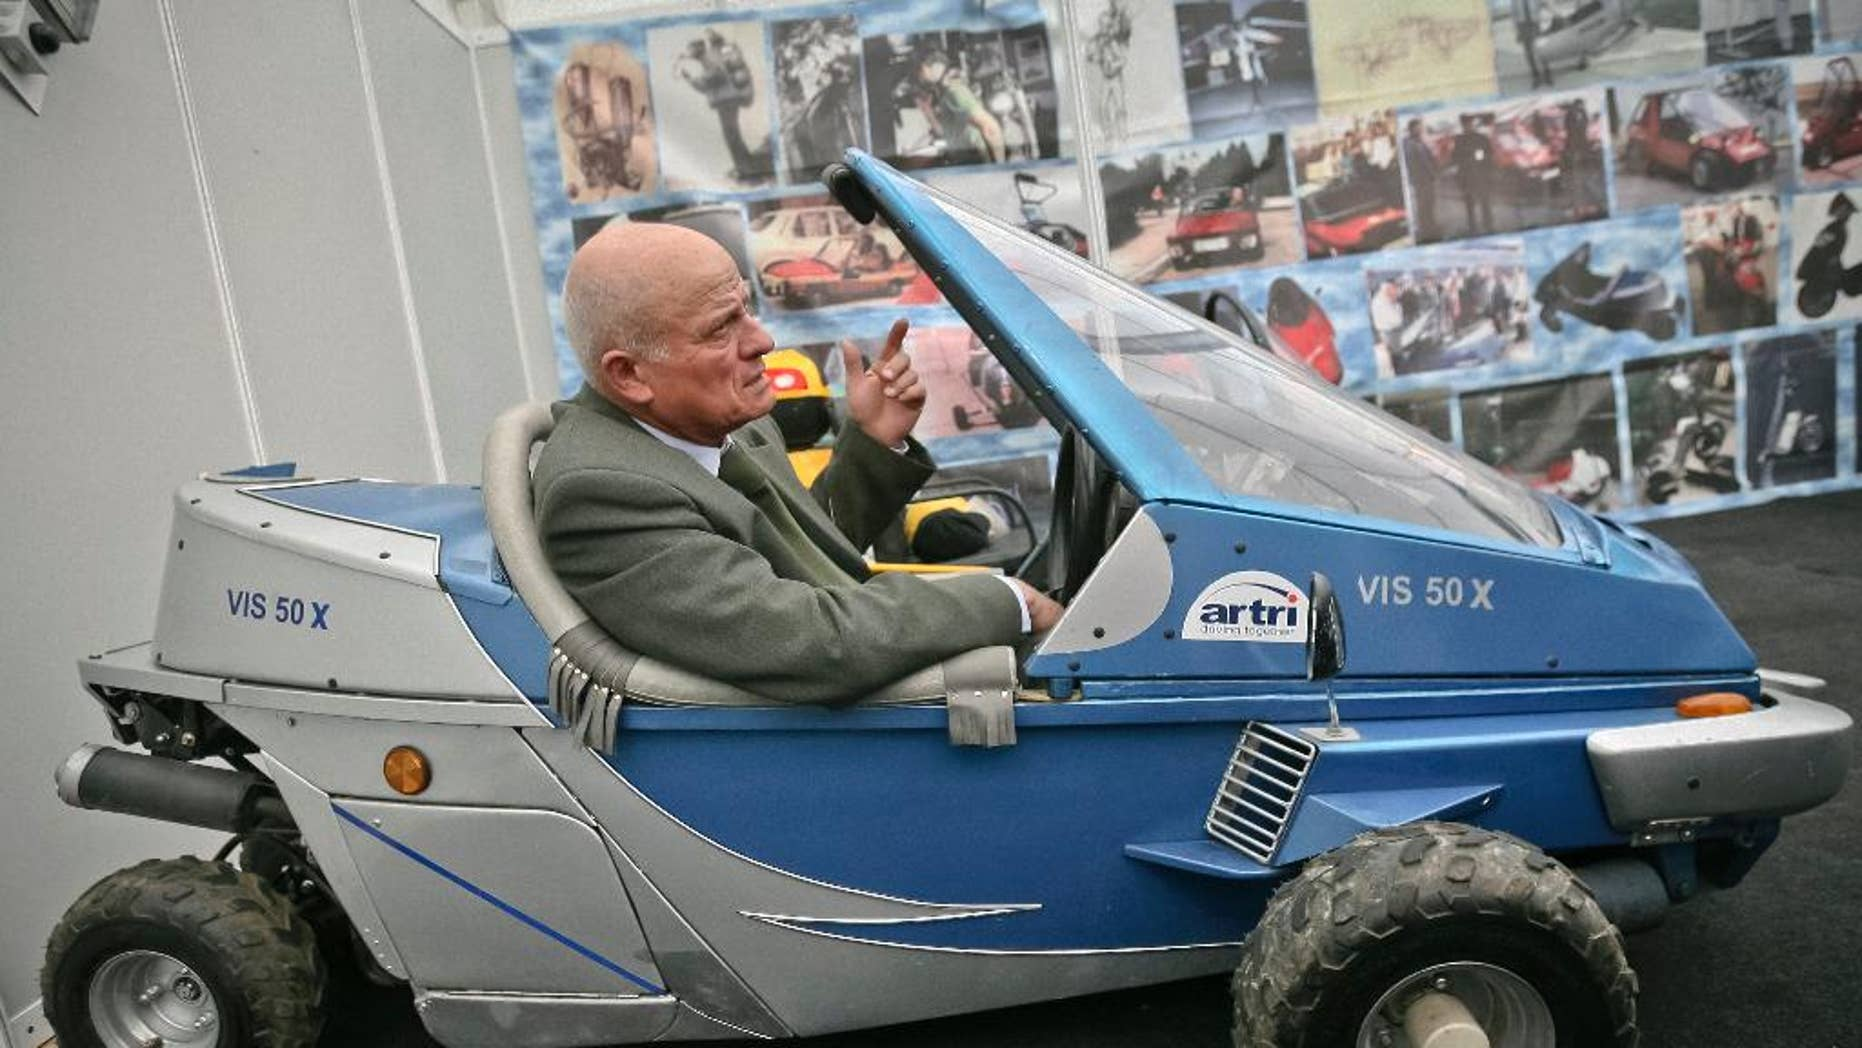 """In a photo taken on March 24, 2009, Justin Capra, a Romanian inventor who claimed he beat the Americans to make the world's first jet-pack, seen on photo wall behind top left,  gestures sitting in a fuel efficient vehicle he designed at an inventions fair in Cluj, Romania. Capra, who in 1956 invented the """"flying rucksack,"""" a personal flying machine, very similar, according to him to the one built in 1962 in the U.S. by Bell Aircraft Corp., has died Monday, Jan. 19, 2015, aged 81.(AP Photo/Mircea Rosca)"""